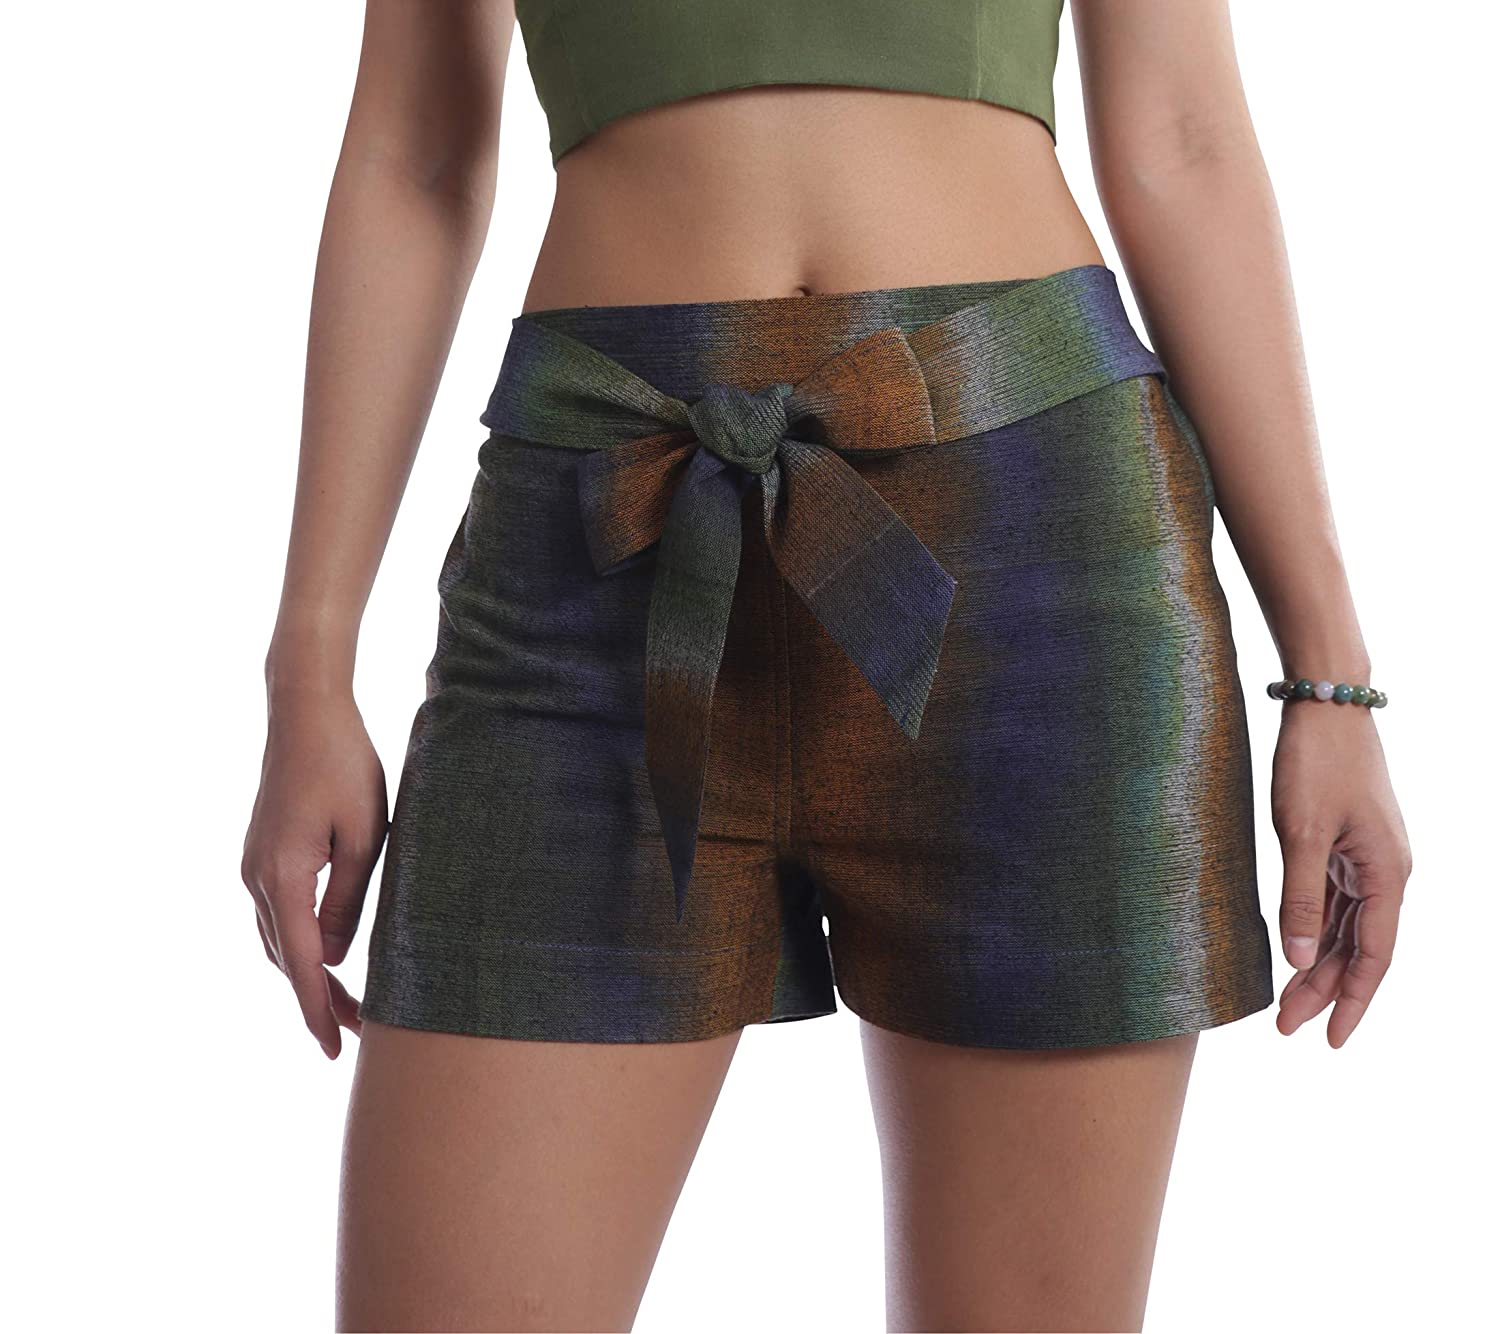 Multicolord Tropic Bliss Organic Cotton Tie Shorts for Women, Hand Dyed, Comfy Boho Style